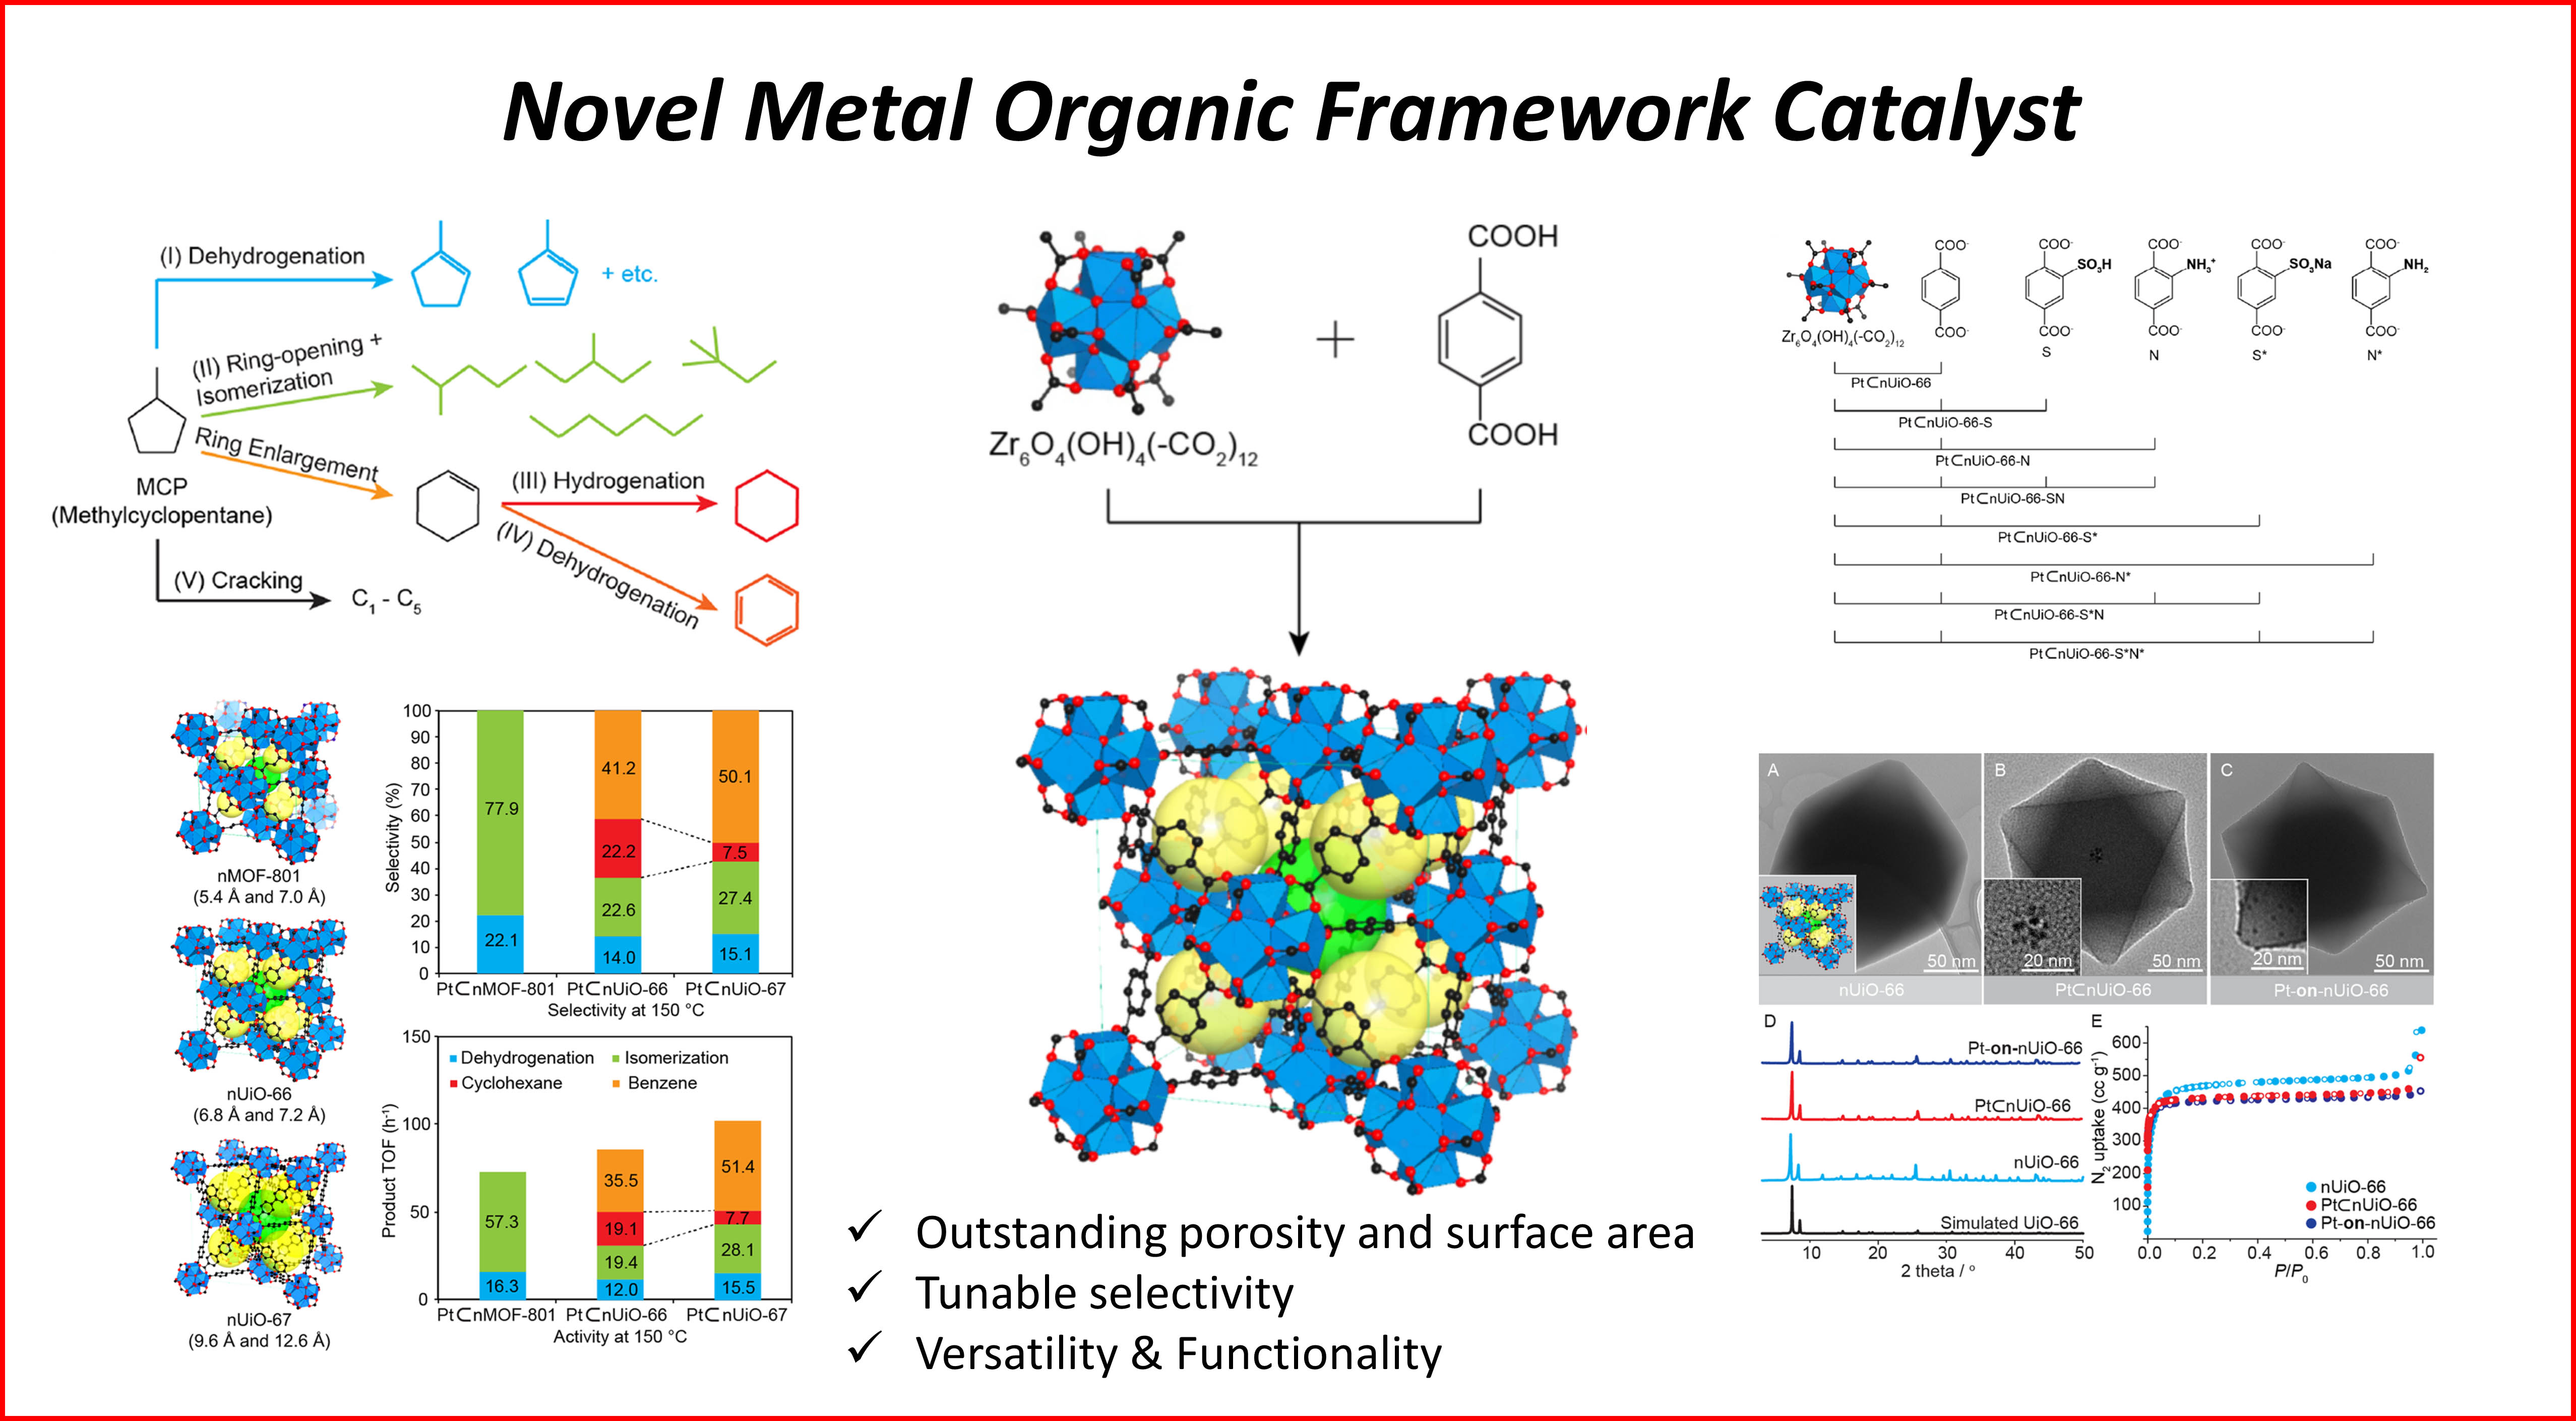 Somorjai Research Group Zeolite Process Flow Diagram Synthesis Surfaces And Compared With The Chemistry On More Traditional Supports Mesoporous Silica Alumina Zeolites Transition Metal Oxides